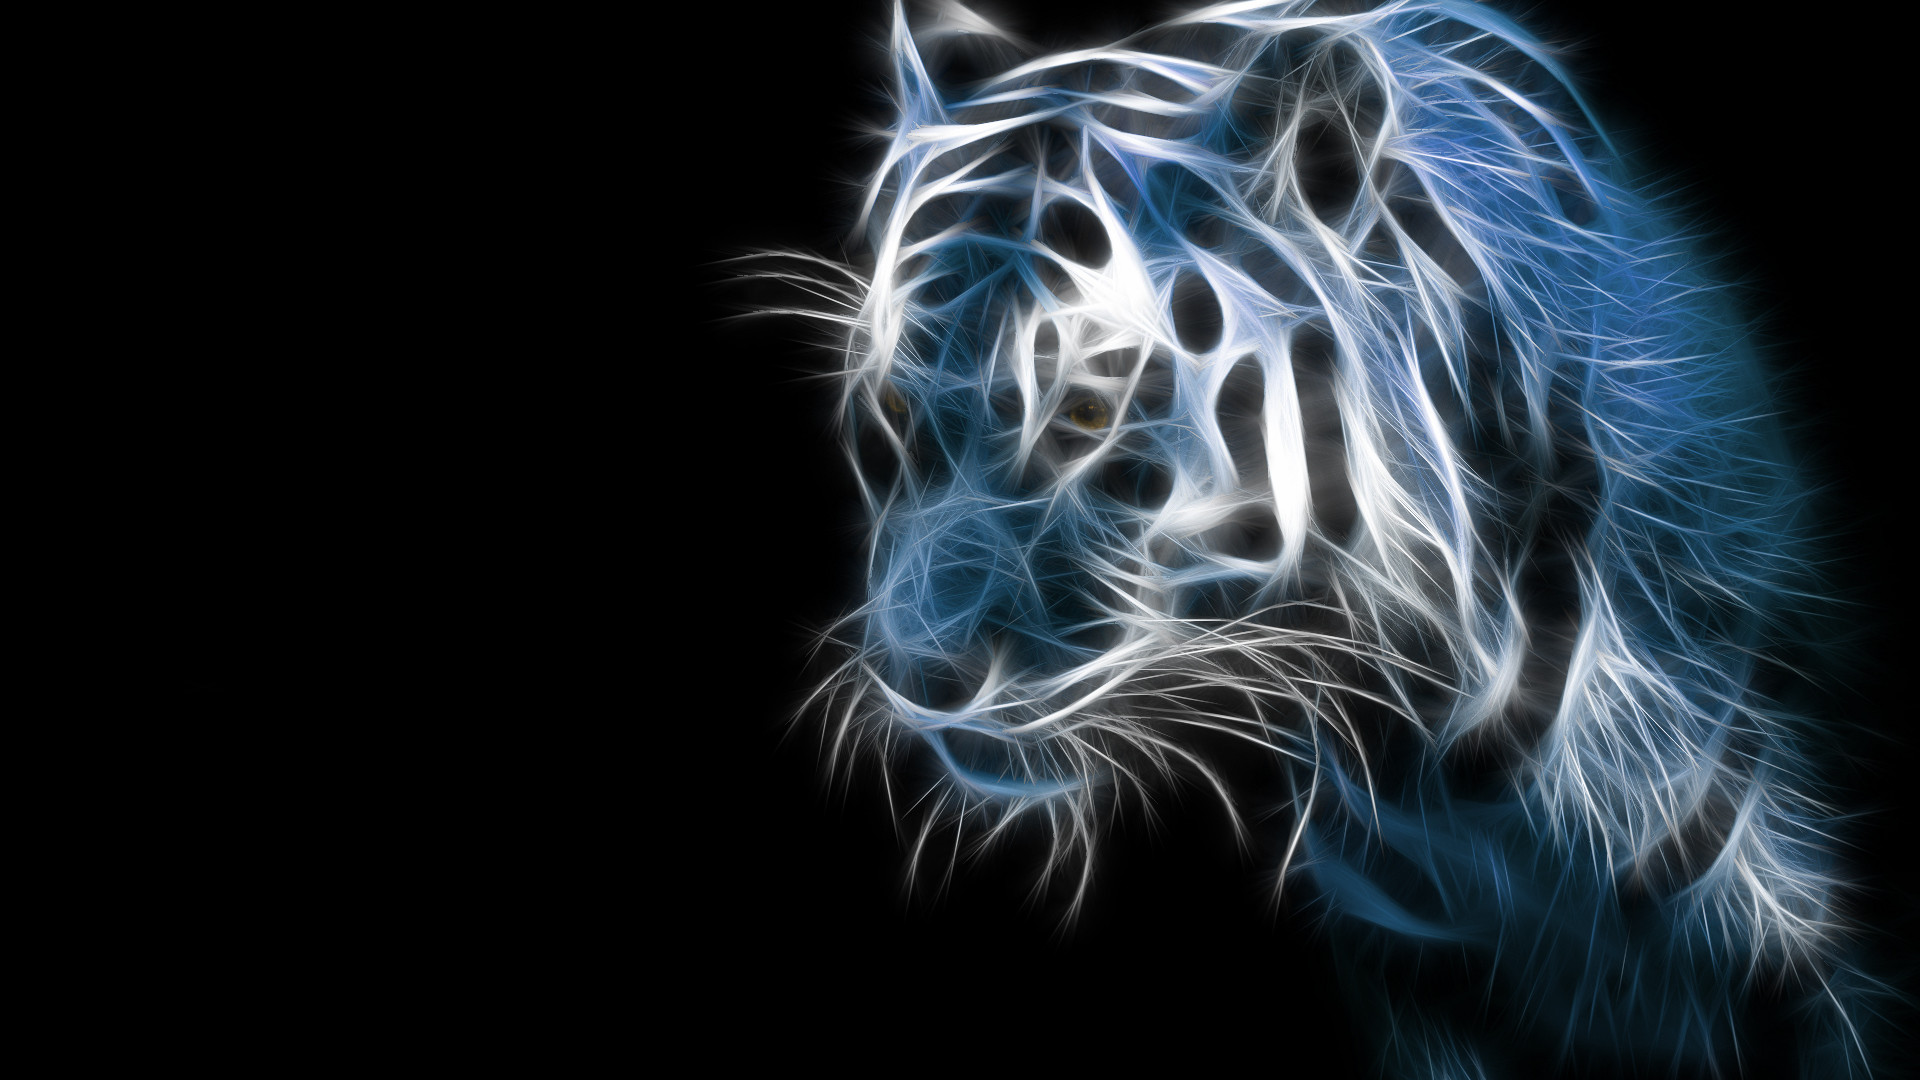 1920x1080 Download Tiger Animal Wallpaper  | Full HD Wallpapers